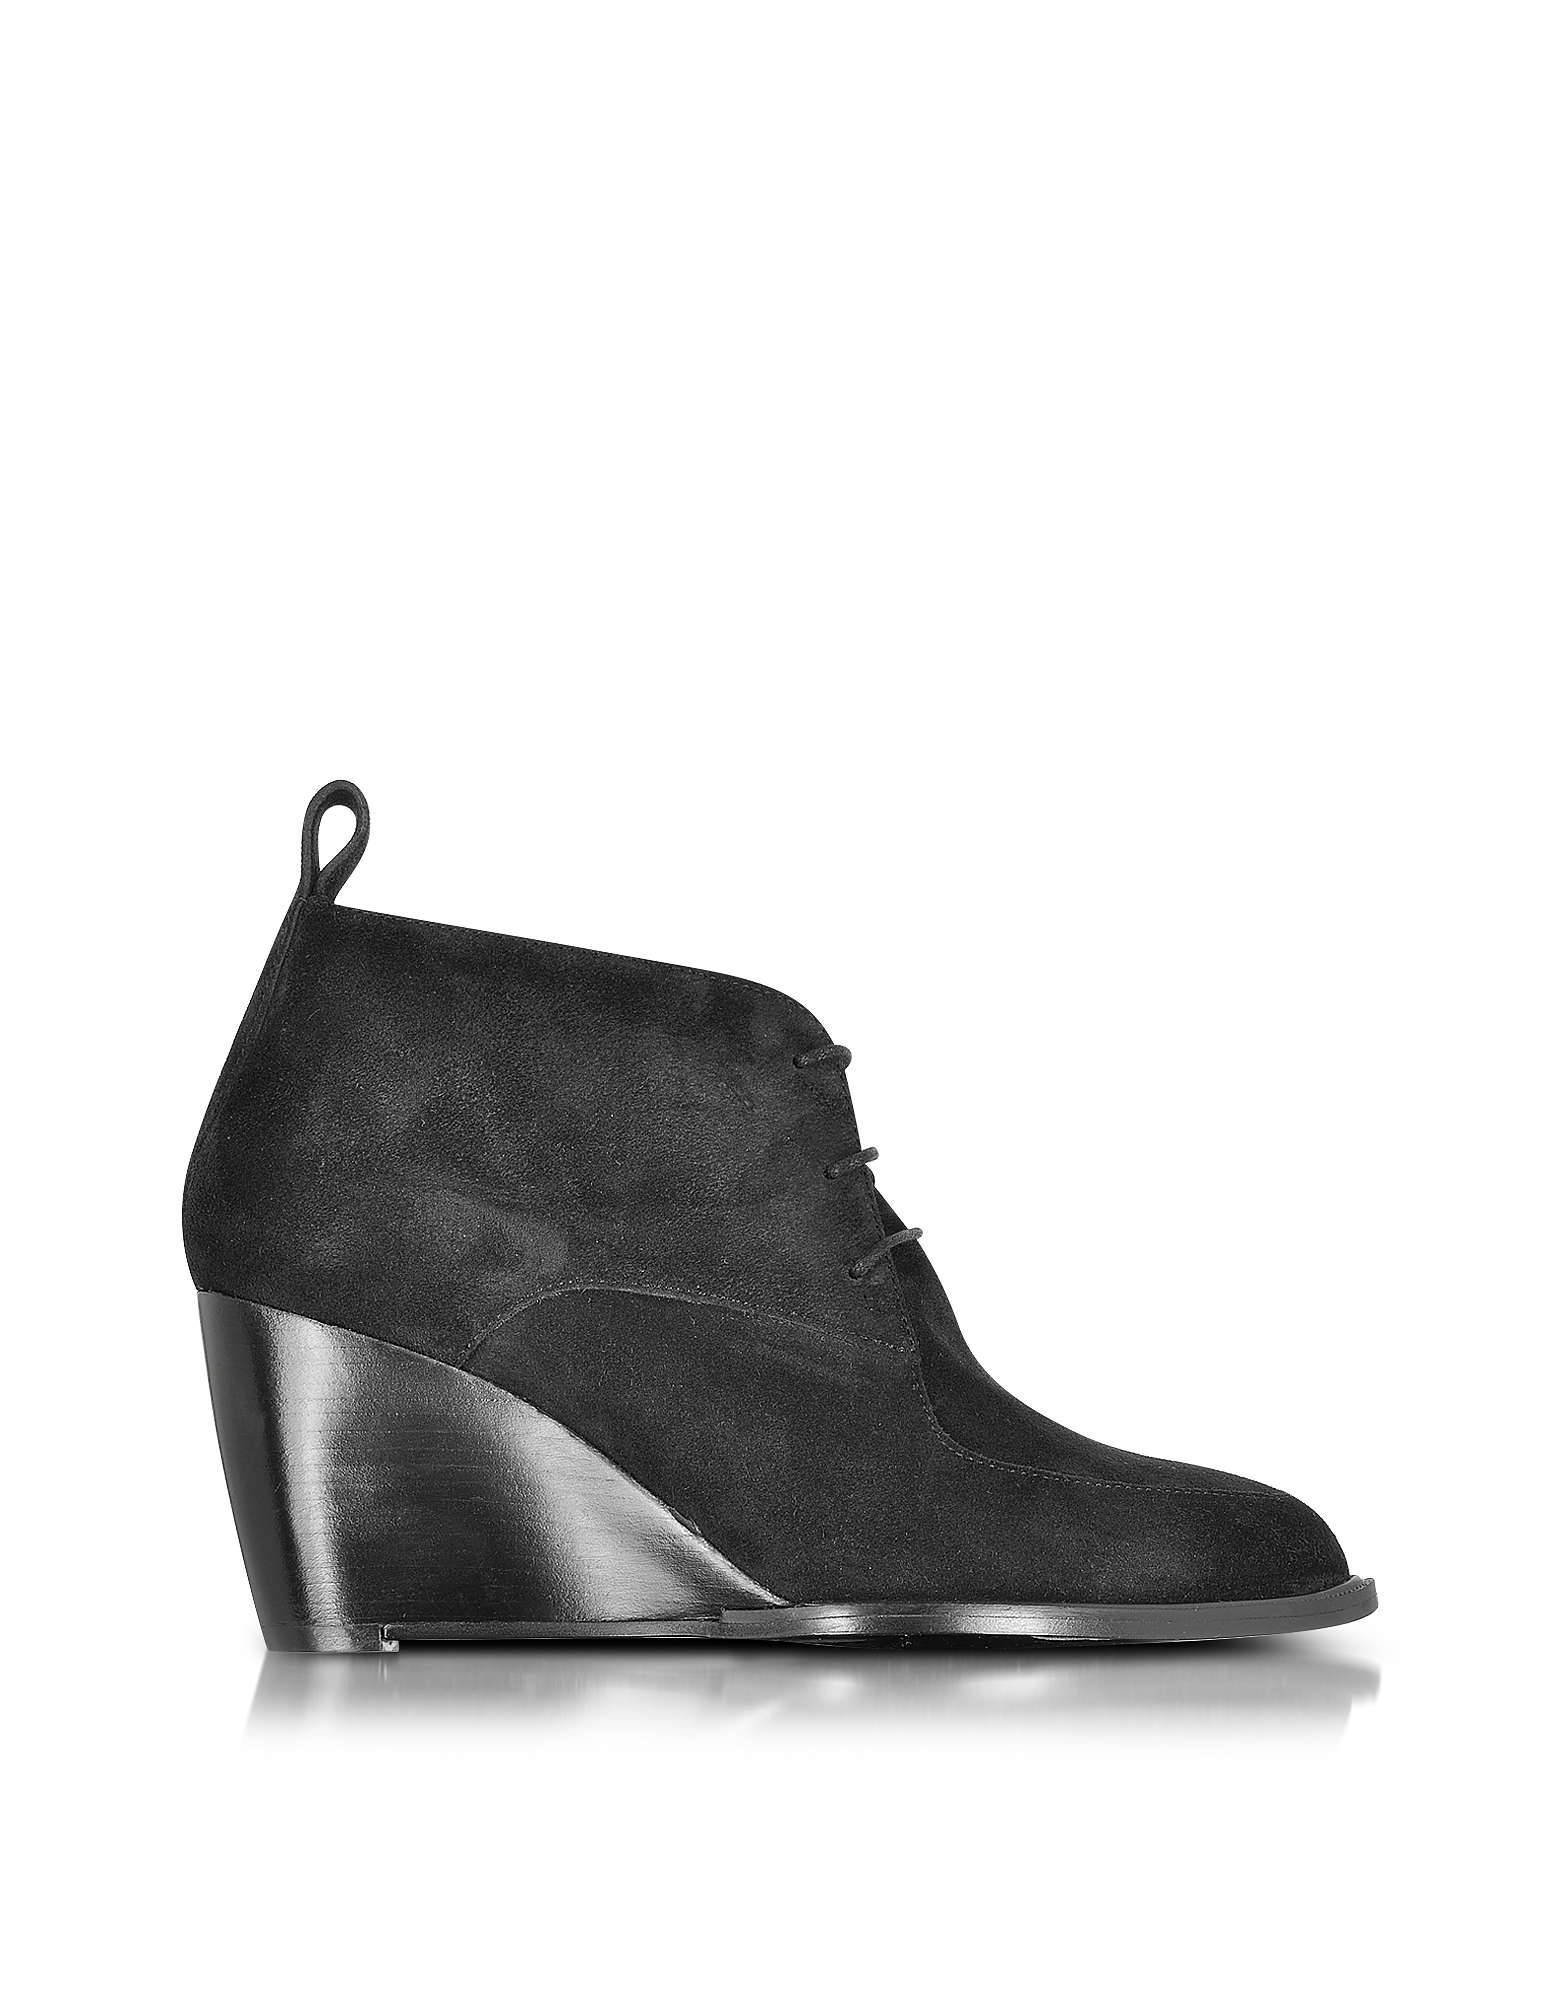 Robert Clergerie Shoes, Orso Black Suede Wedge Bootie